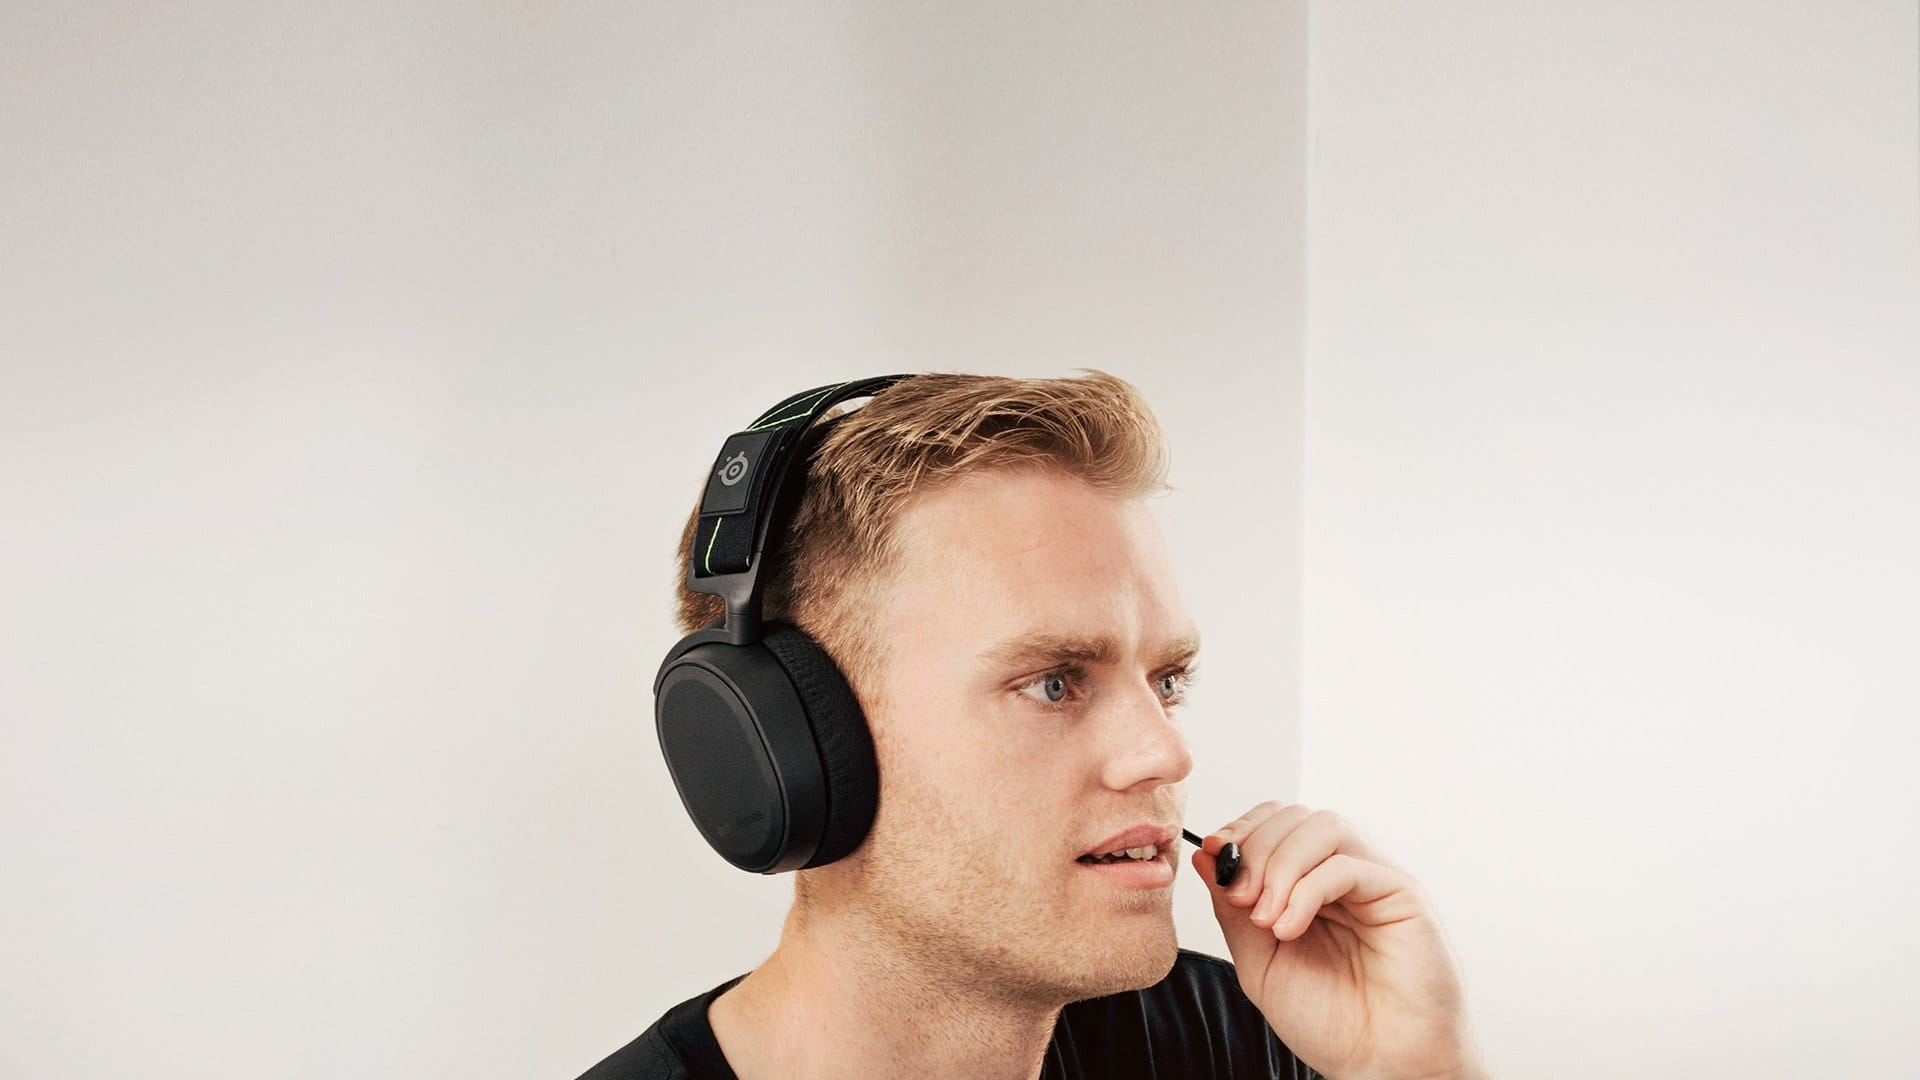 Steelseries Arctis 7 with Free Carrying Bag and Under-Desk Headphone Hanger $127.49